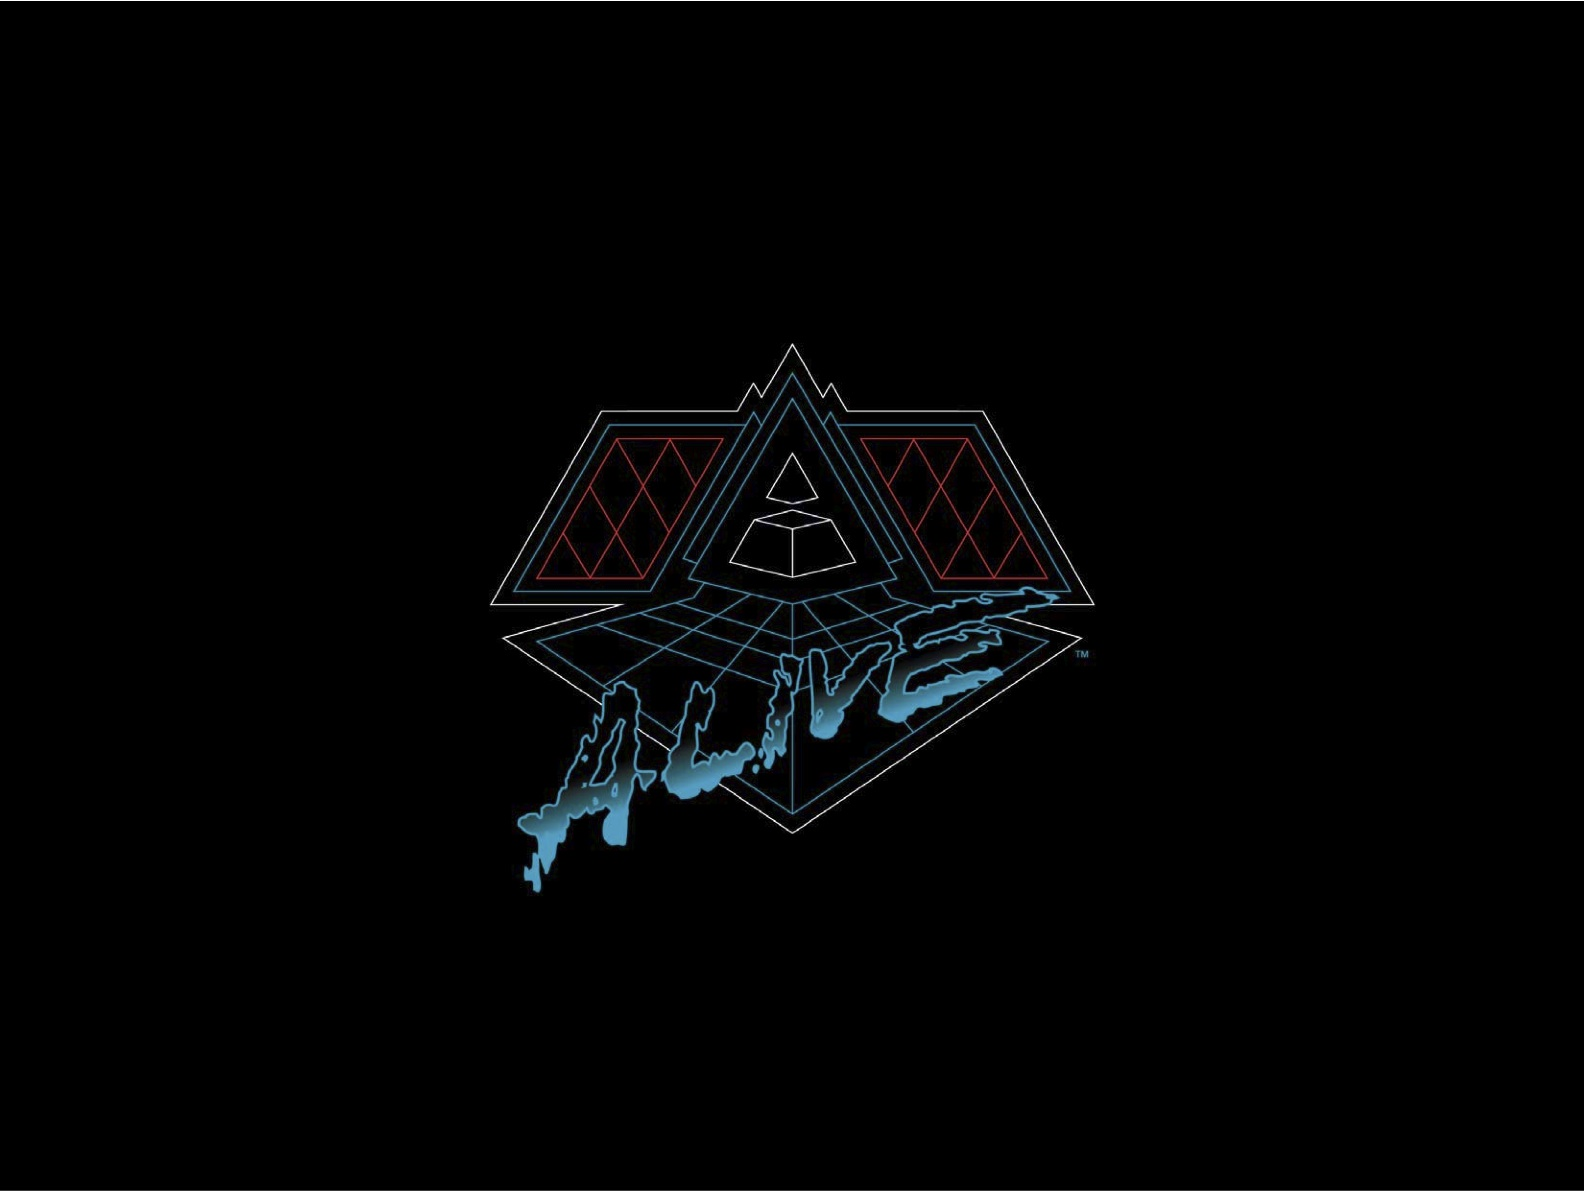 Daft Punk Alive Wallpaper